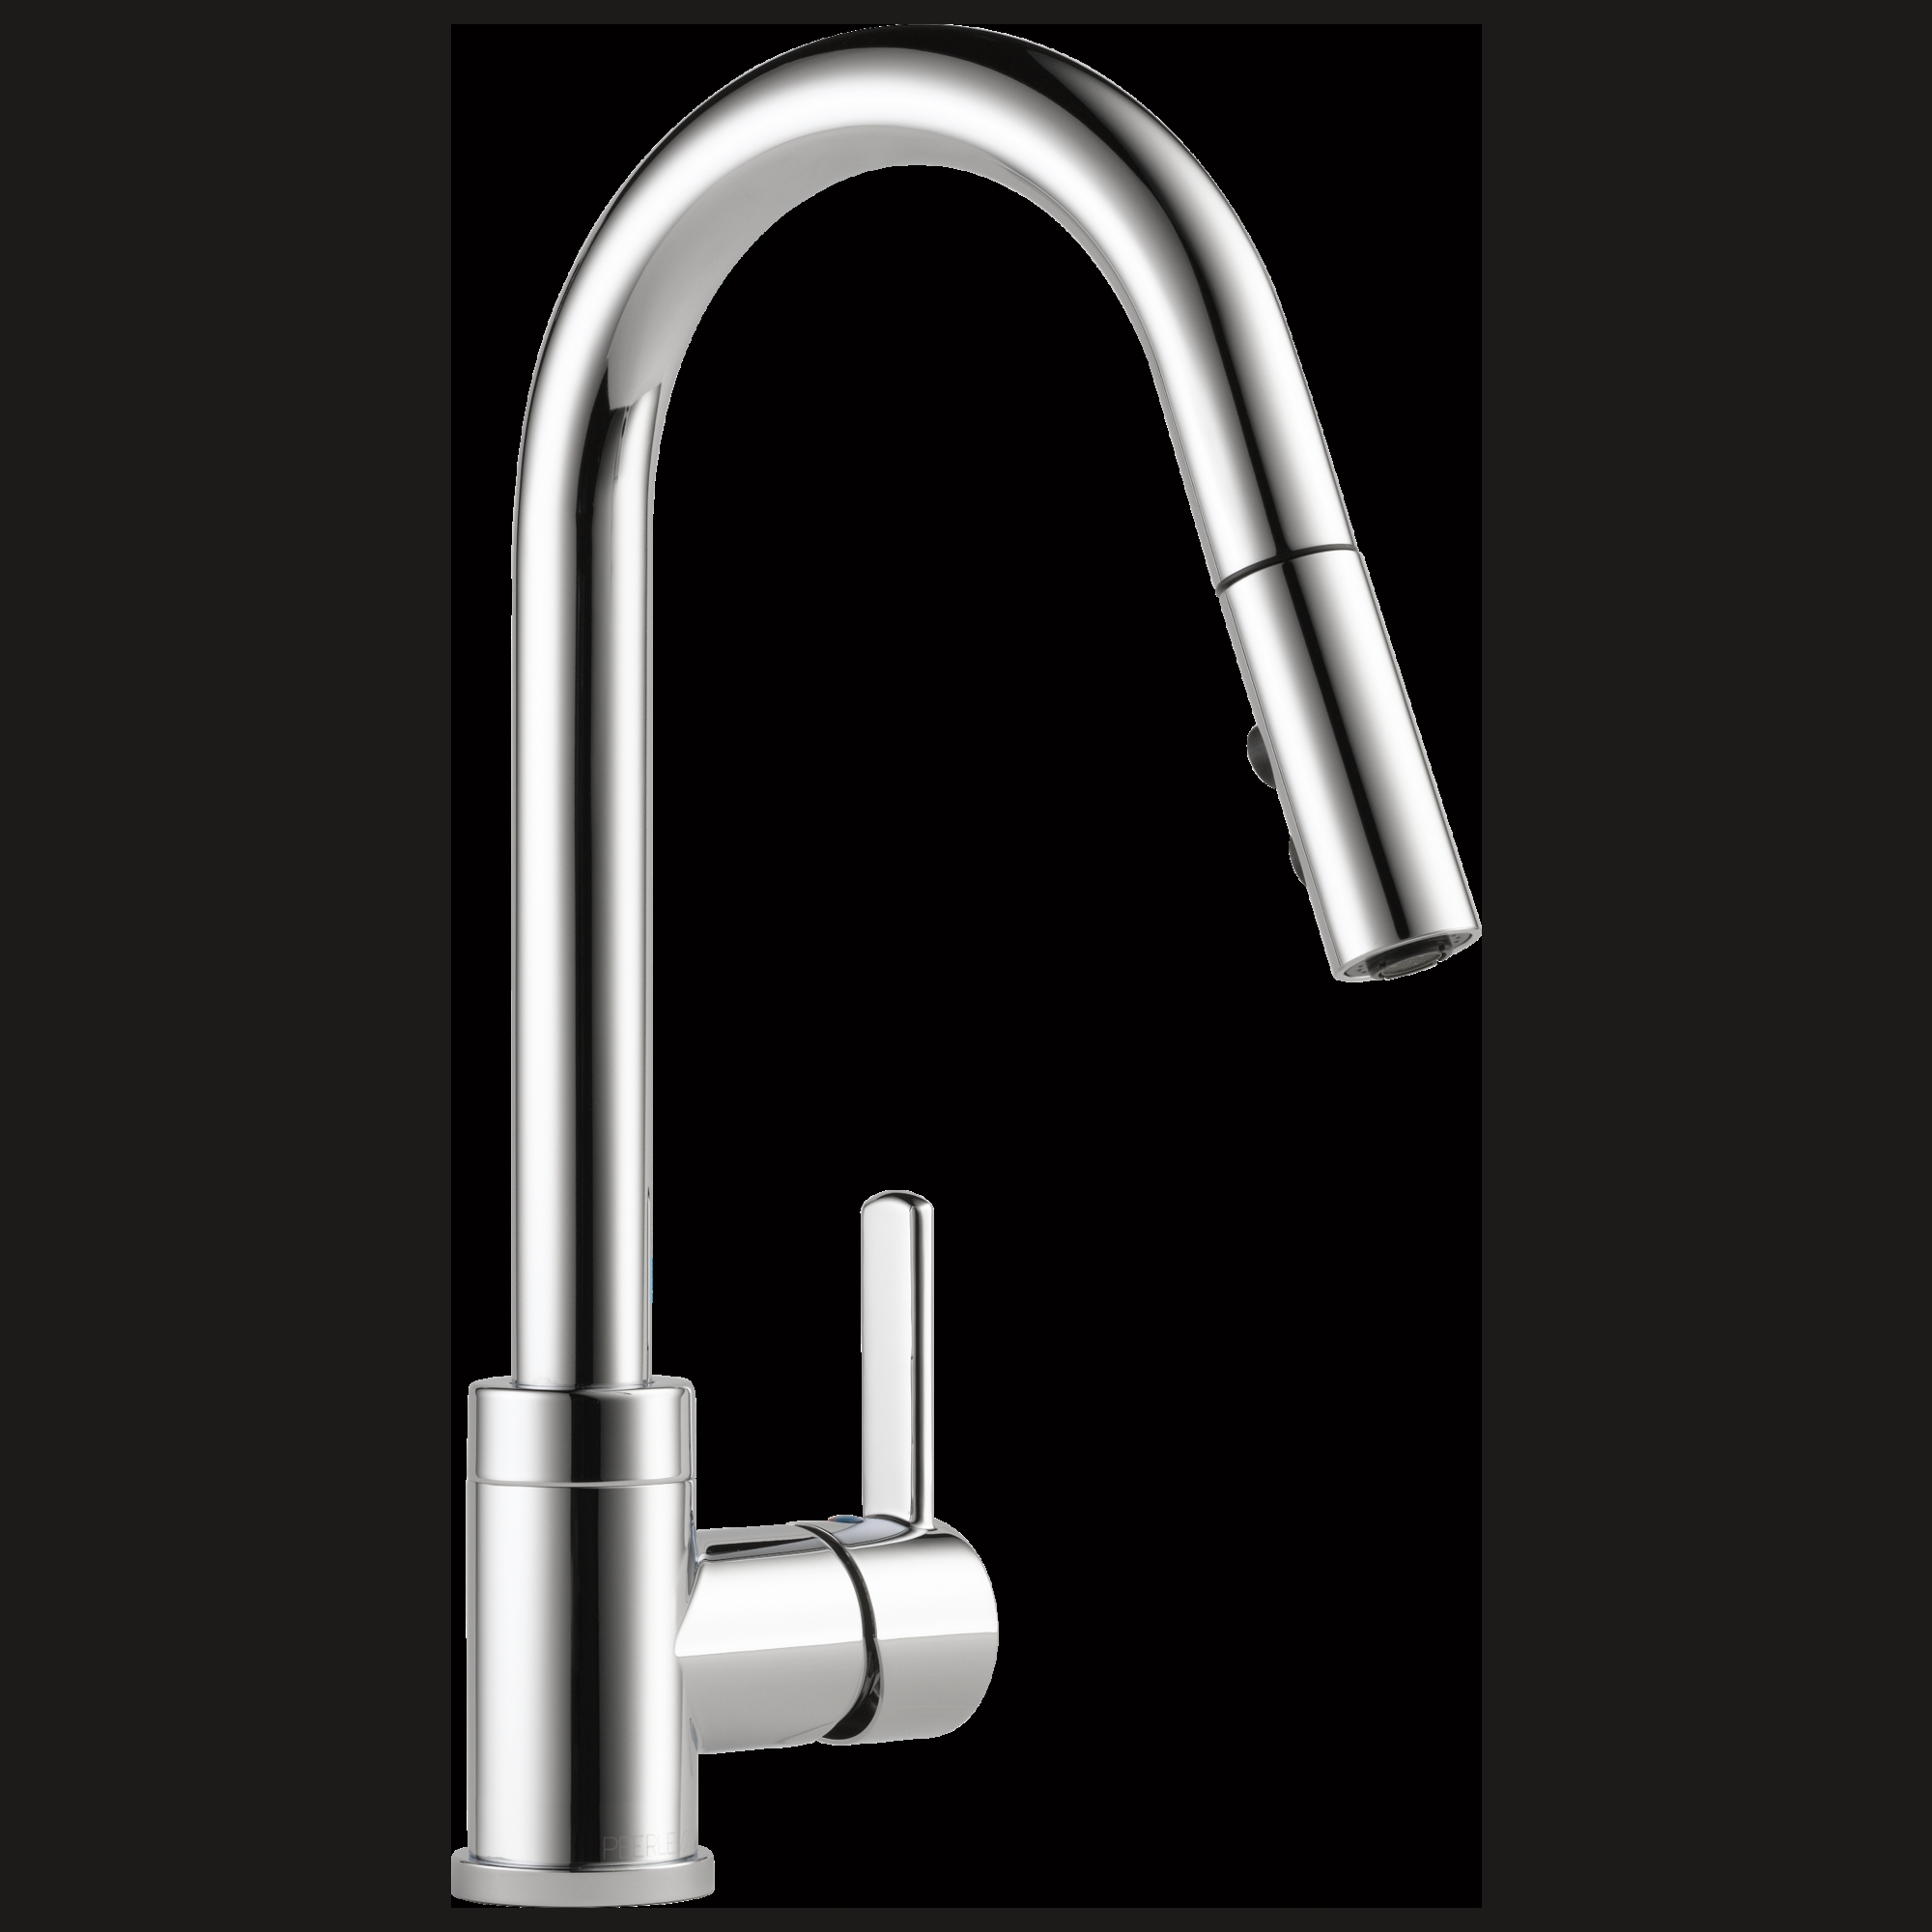 Ideas, are delta and peerless faucets interchangeable are delta and peerless faucets interchangeable peerless faucet 2000 x 2000 1  .